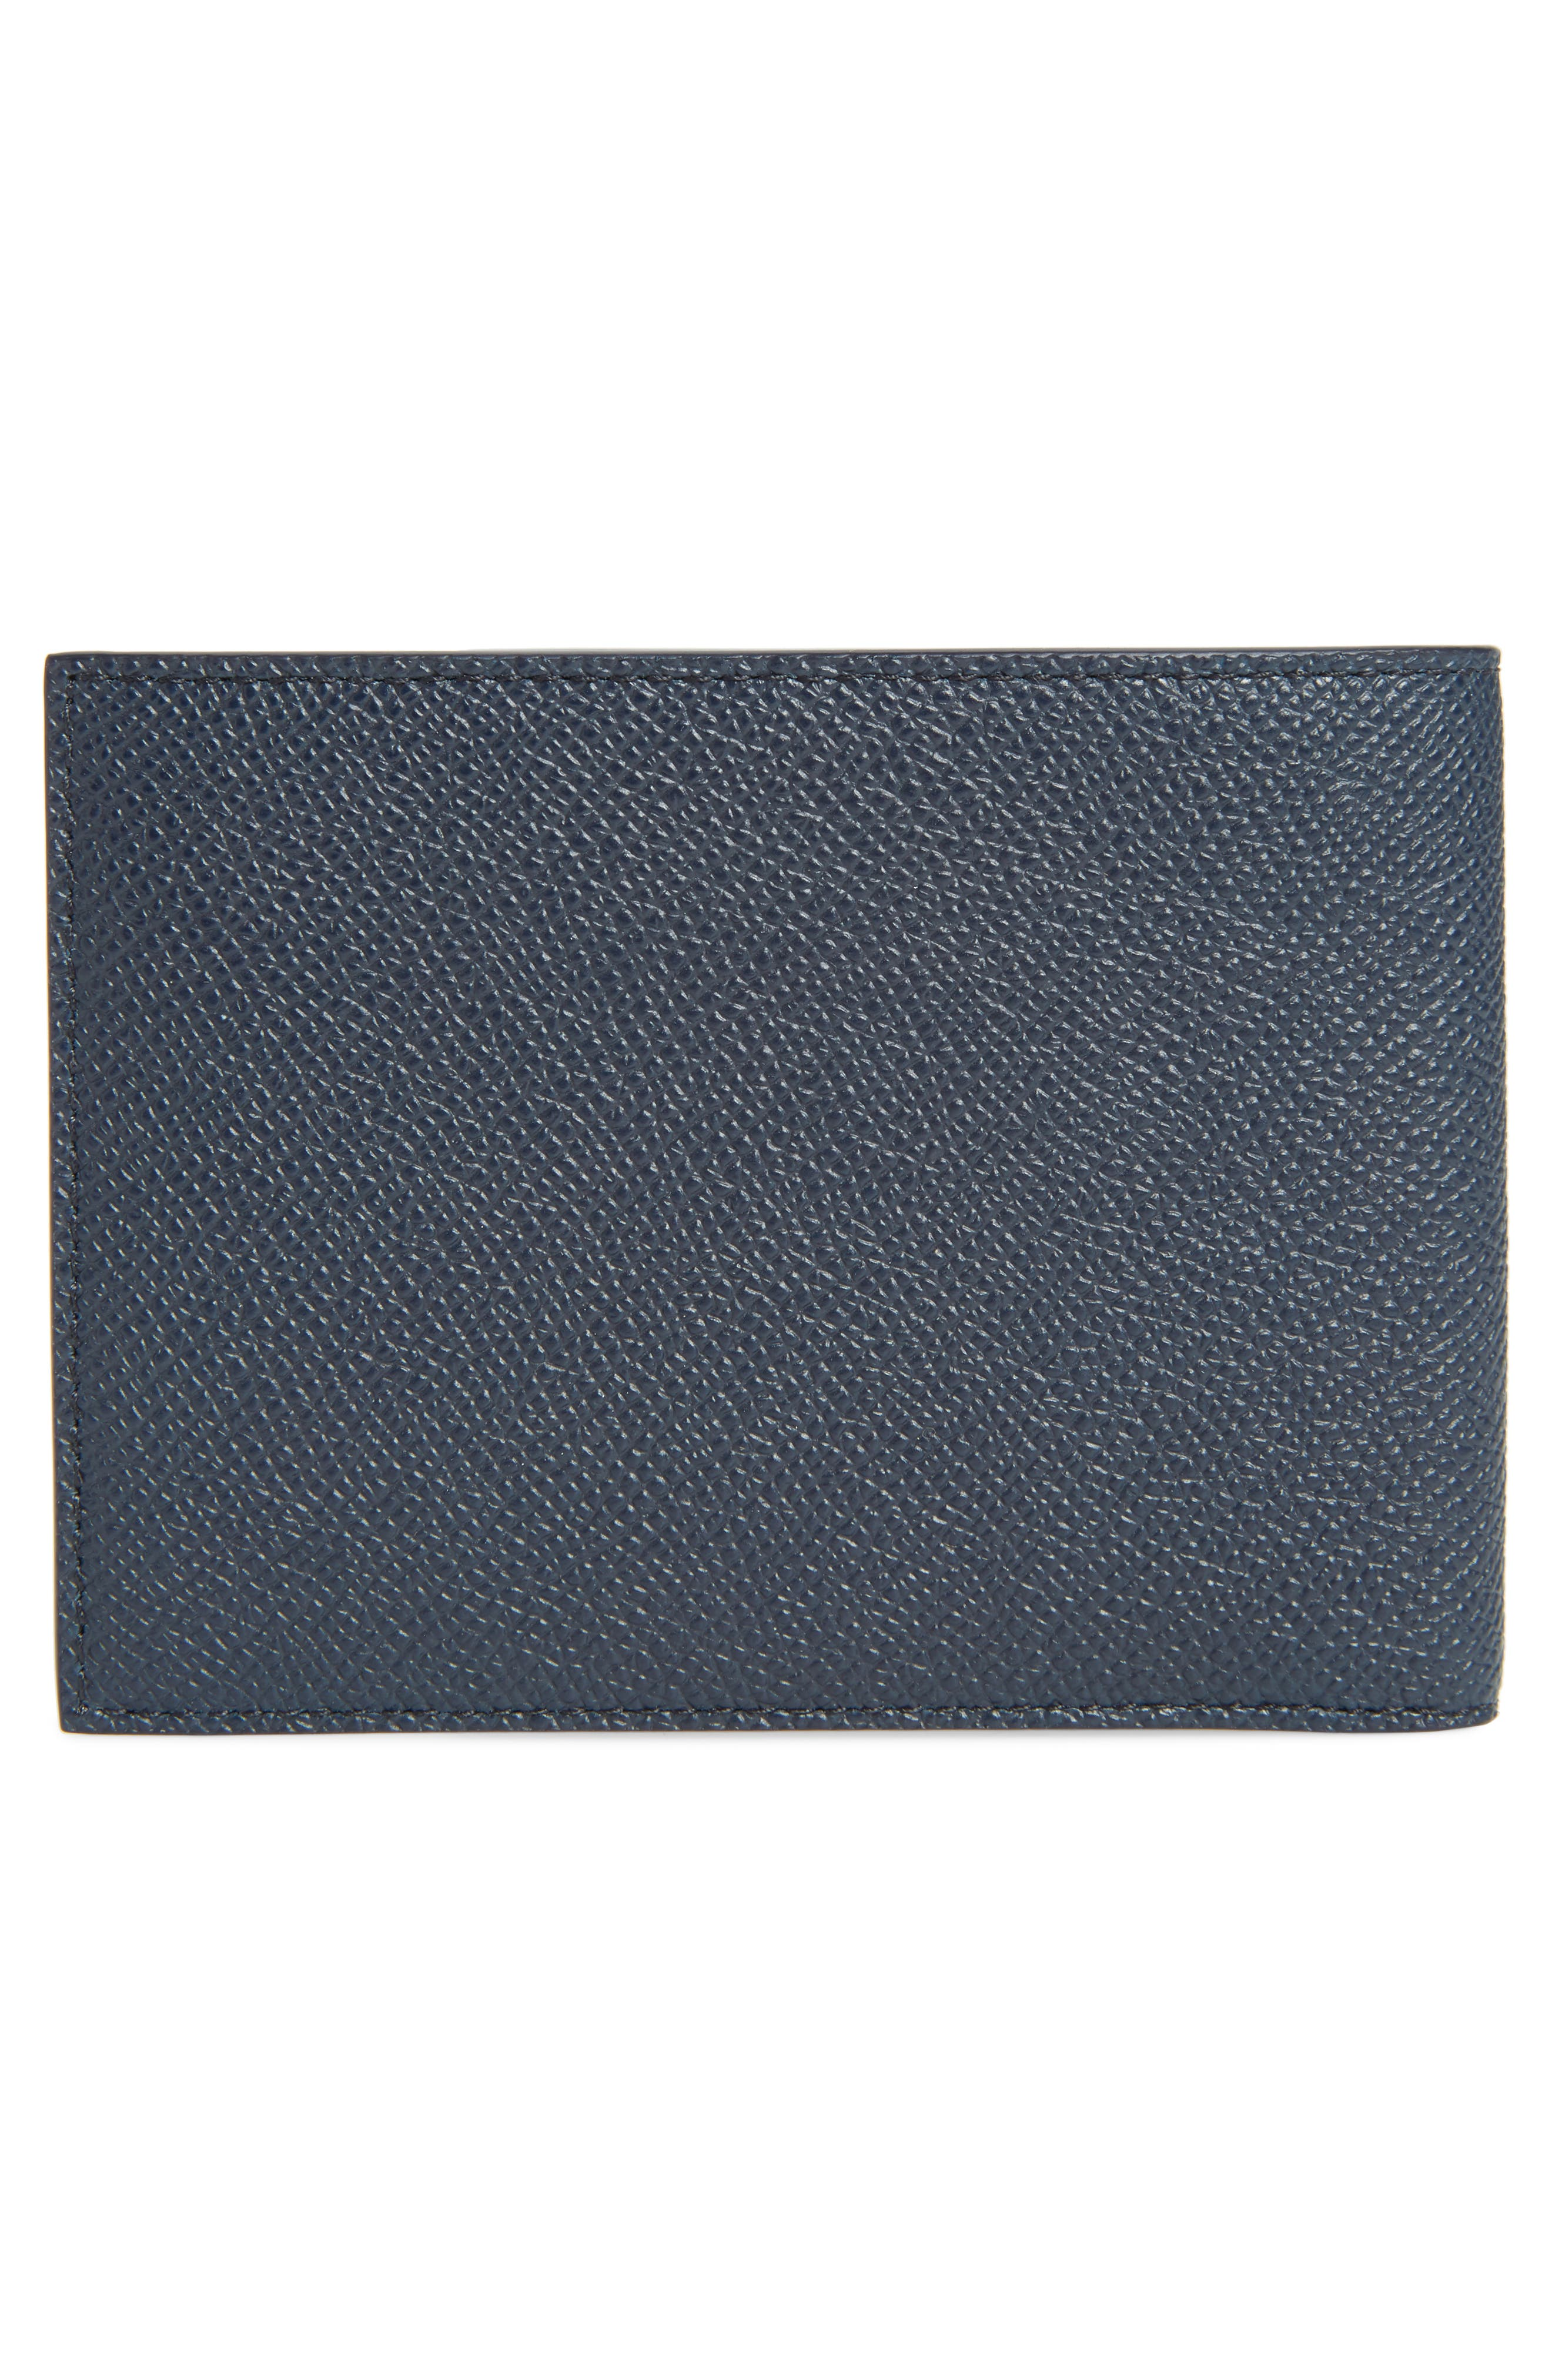 Alternate Image 3  - Givenchy Eros Textured Leather Wallet